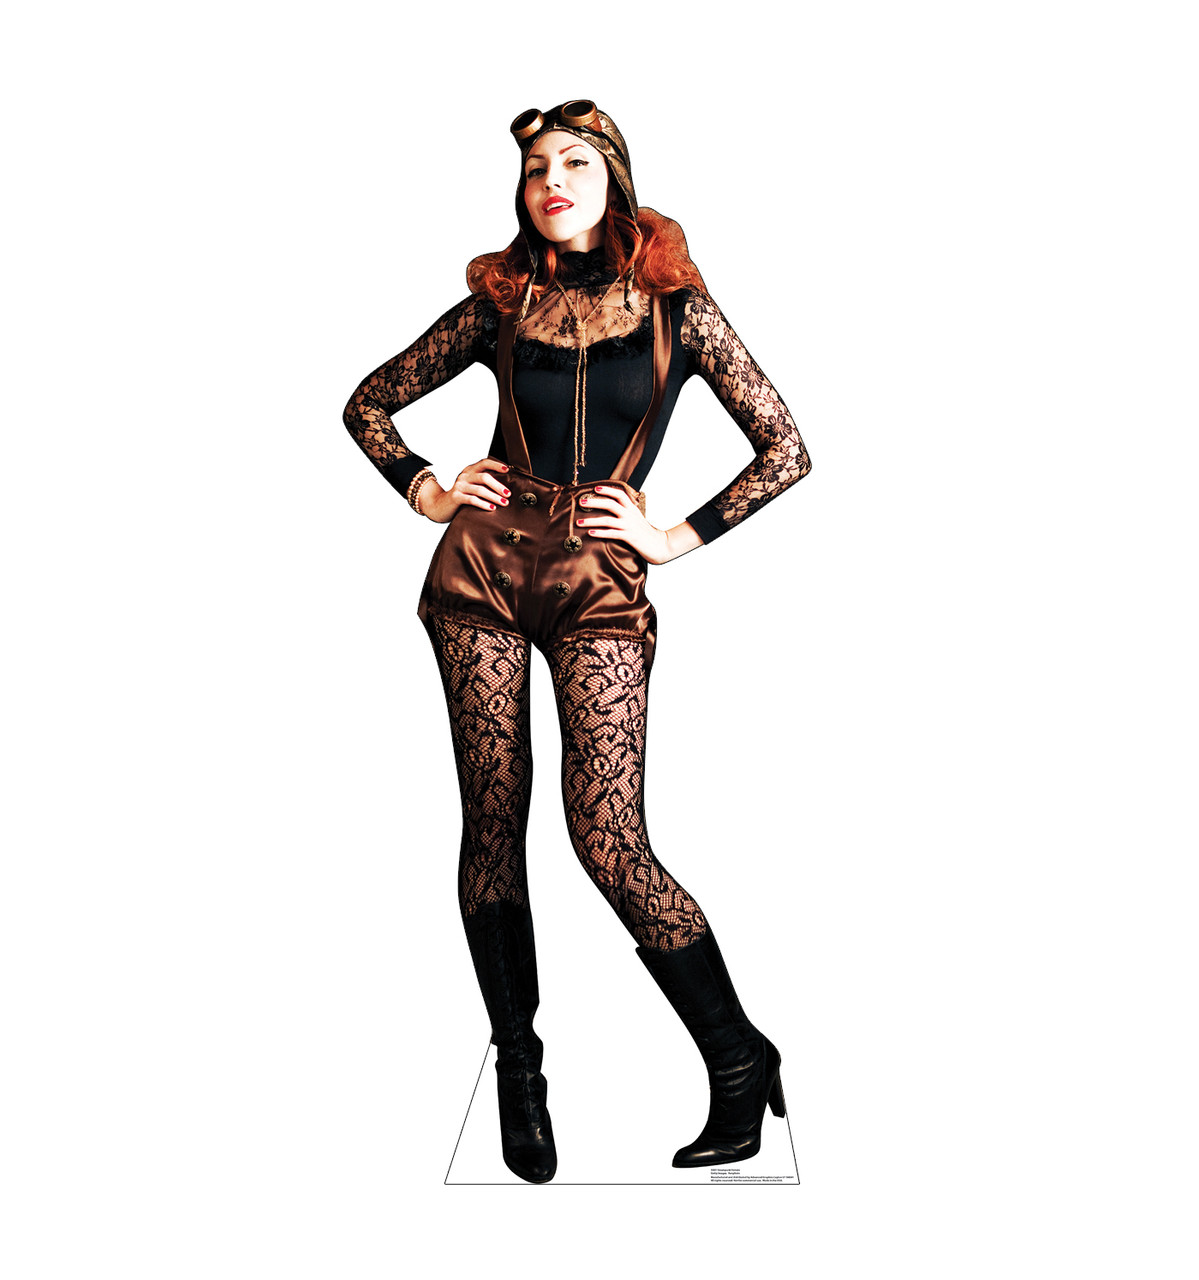 Life-size cardboard standee of Steampunk Female Front View